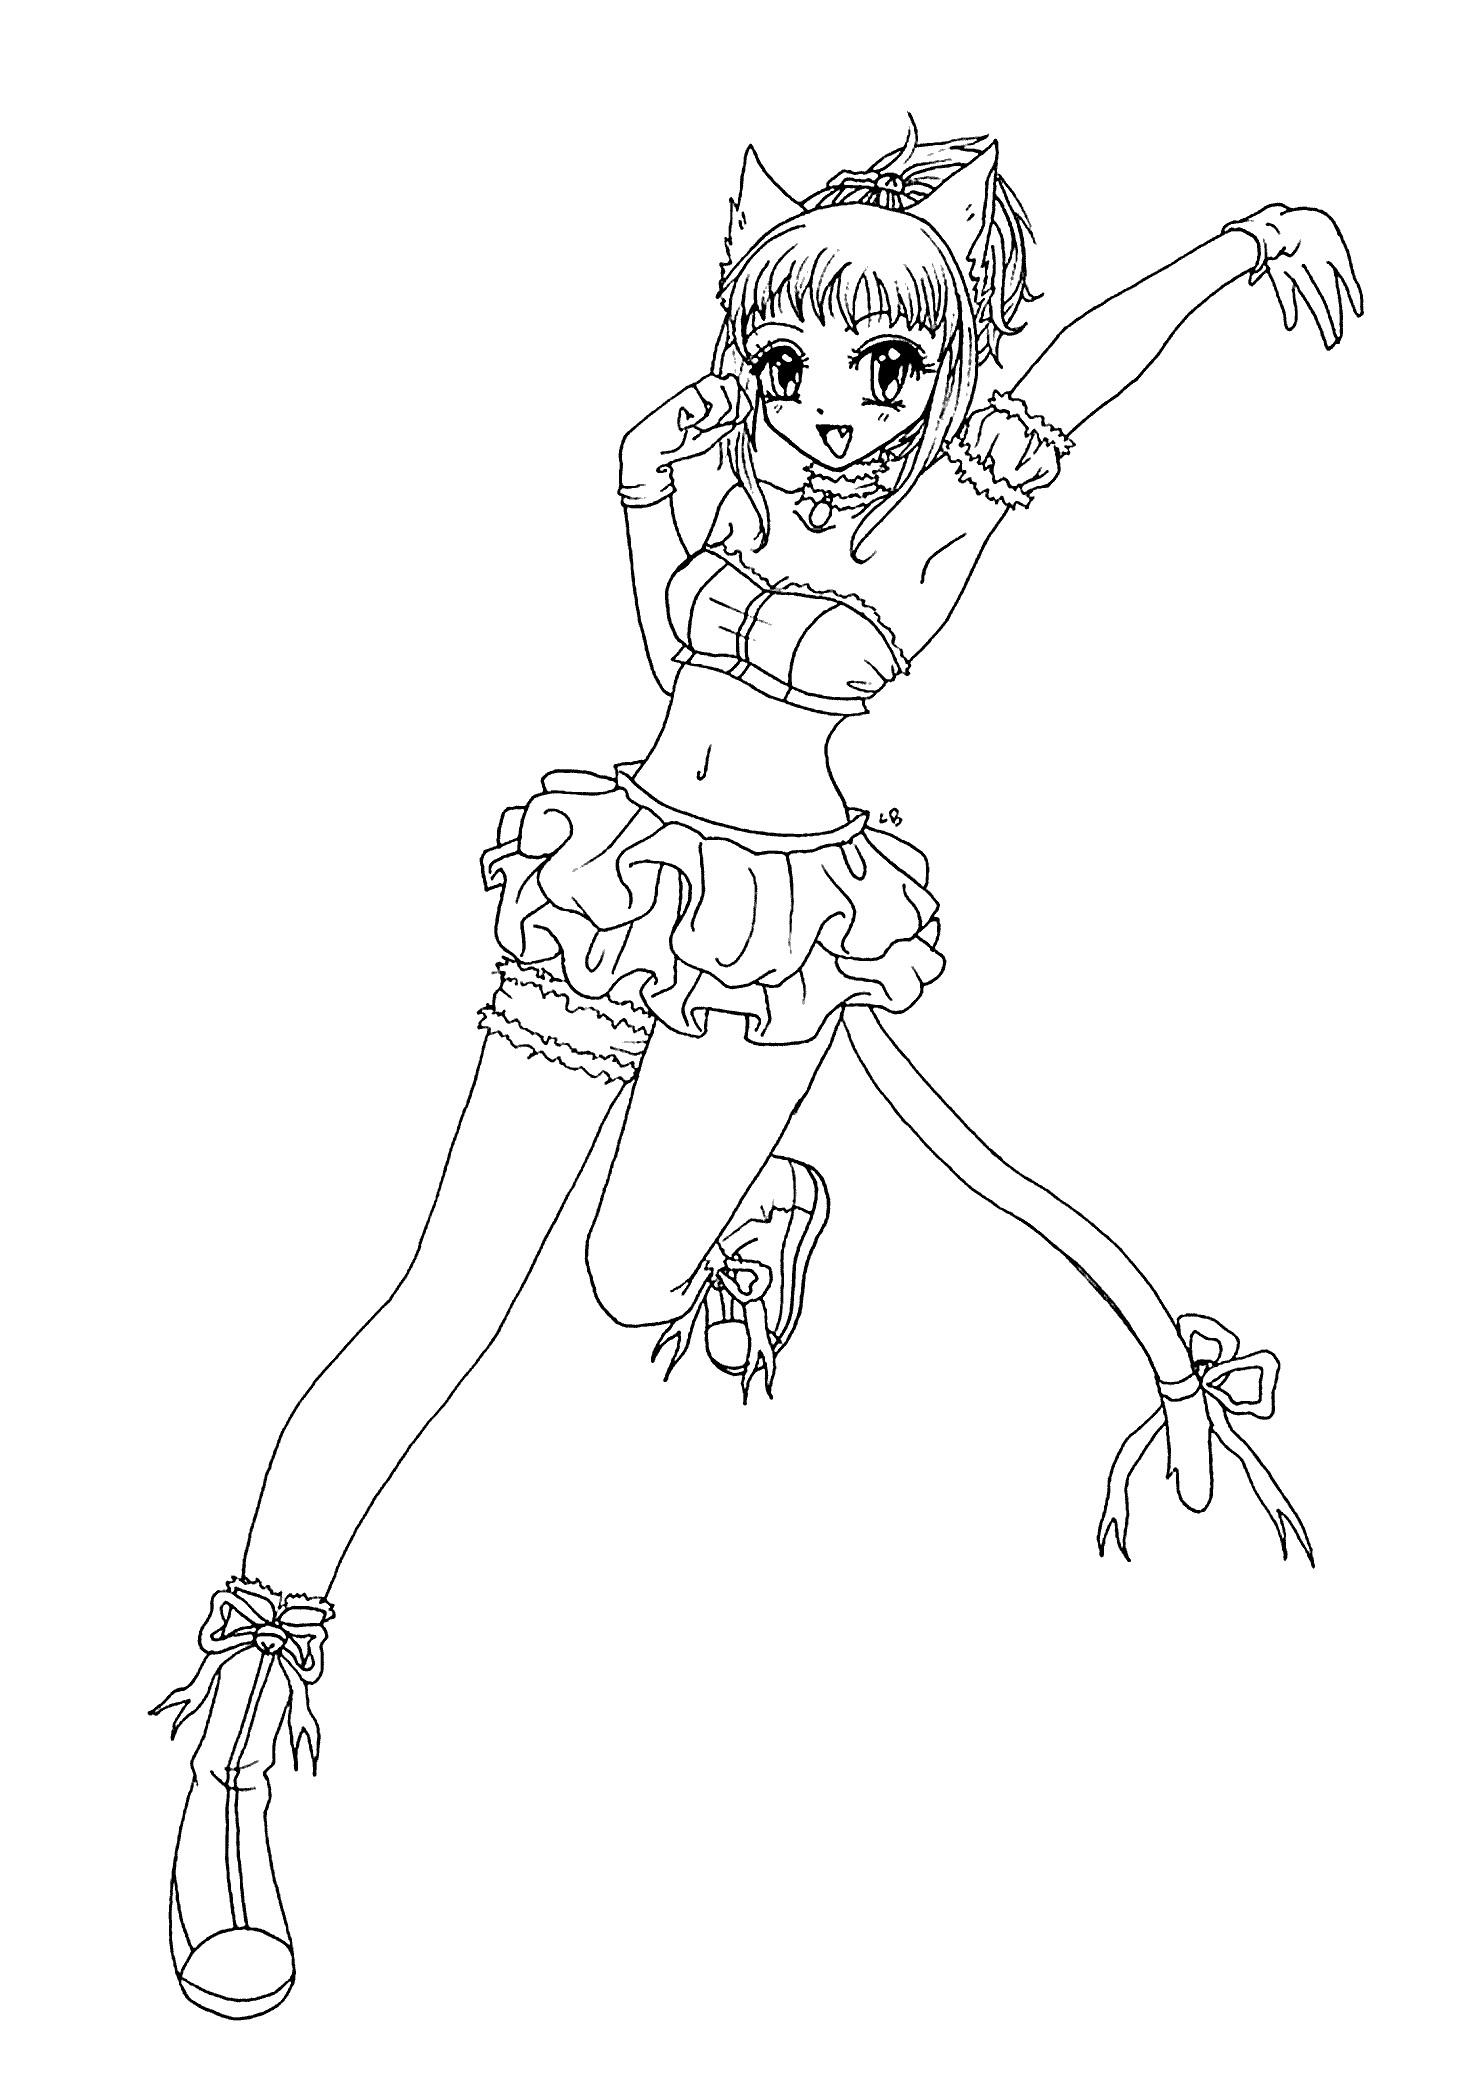 anime cat girl coloring pages cat anime coloring pages at getcoloringscom free anime coloring pages girl cat